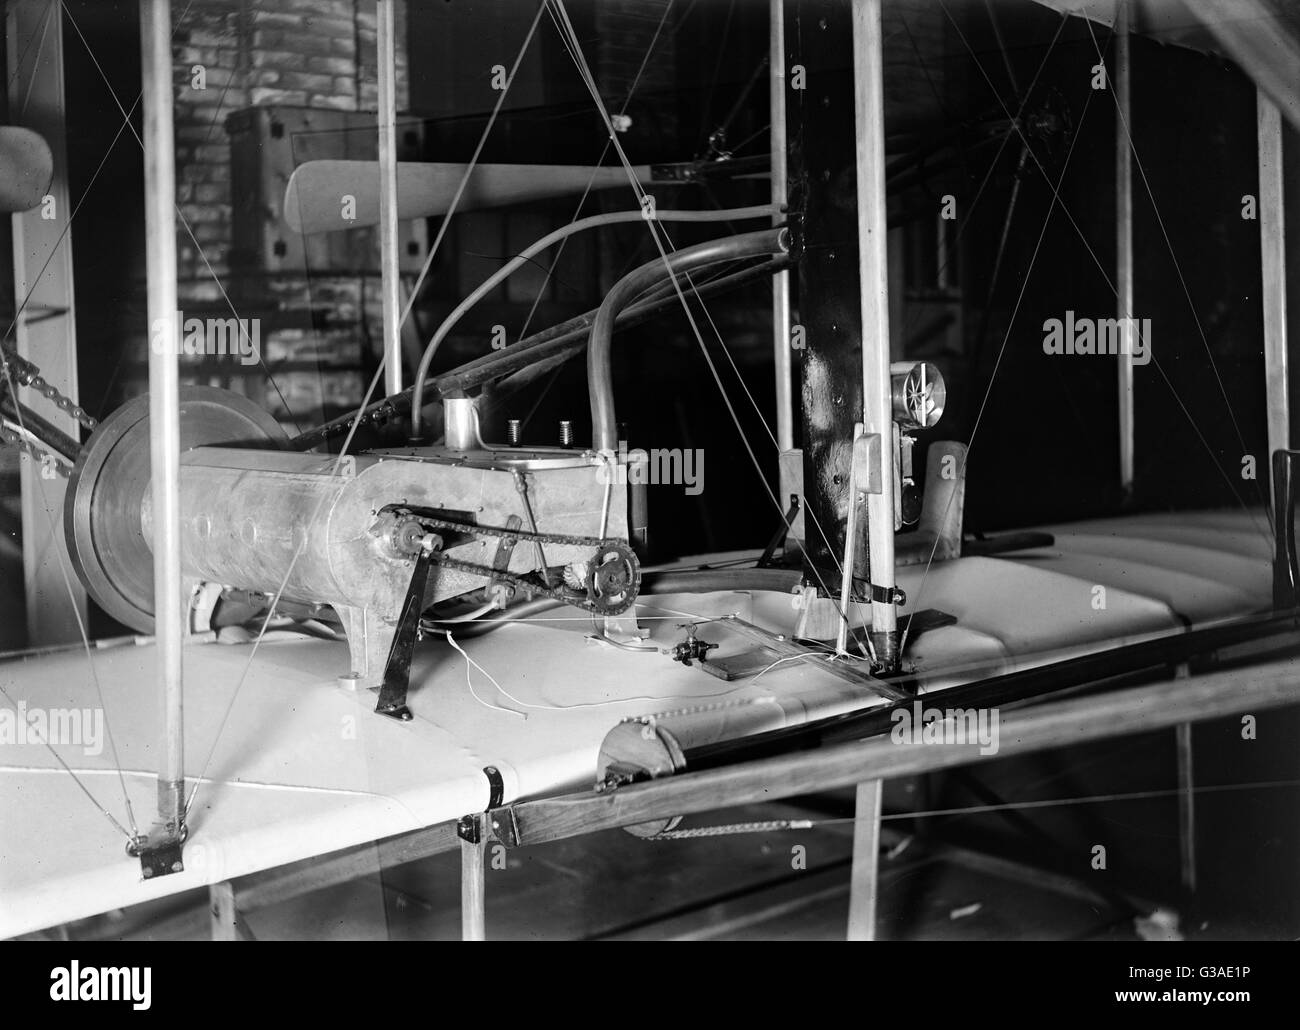 Powered 1903 machine in the shop. Date 1903. - Stock Image